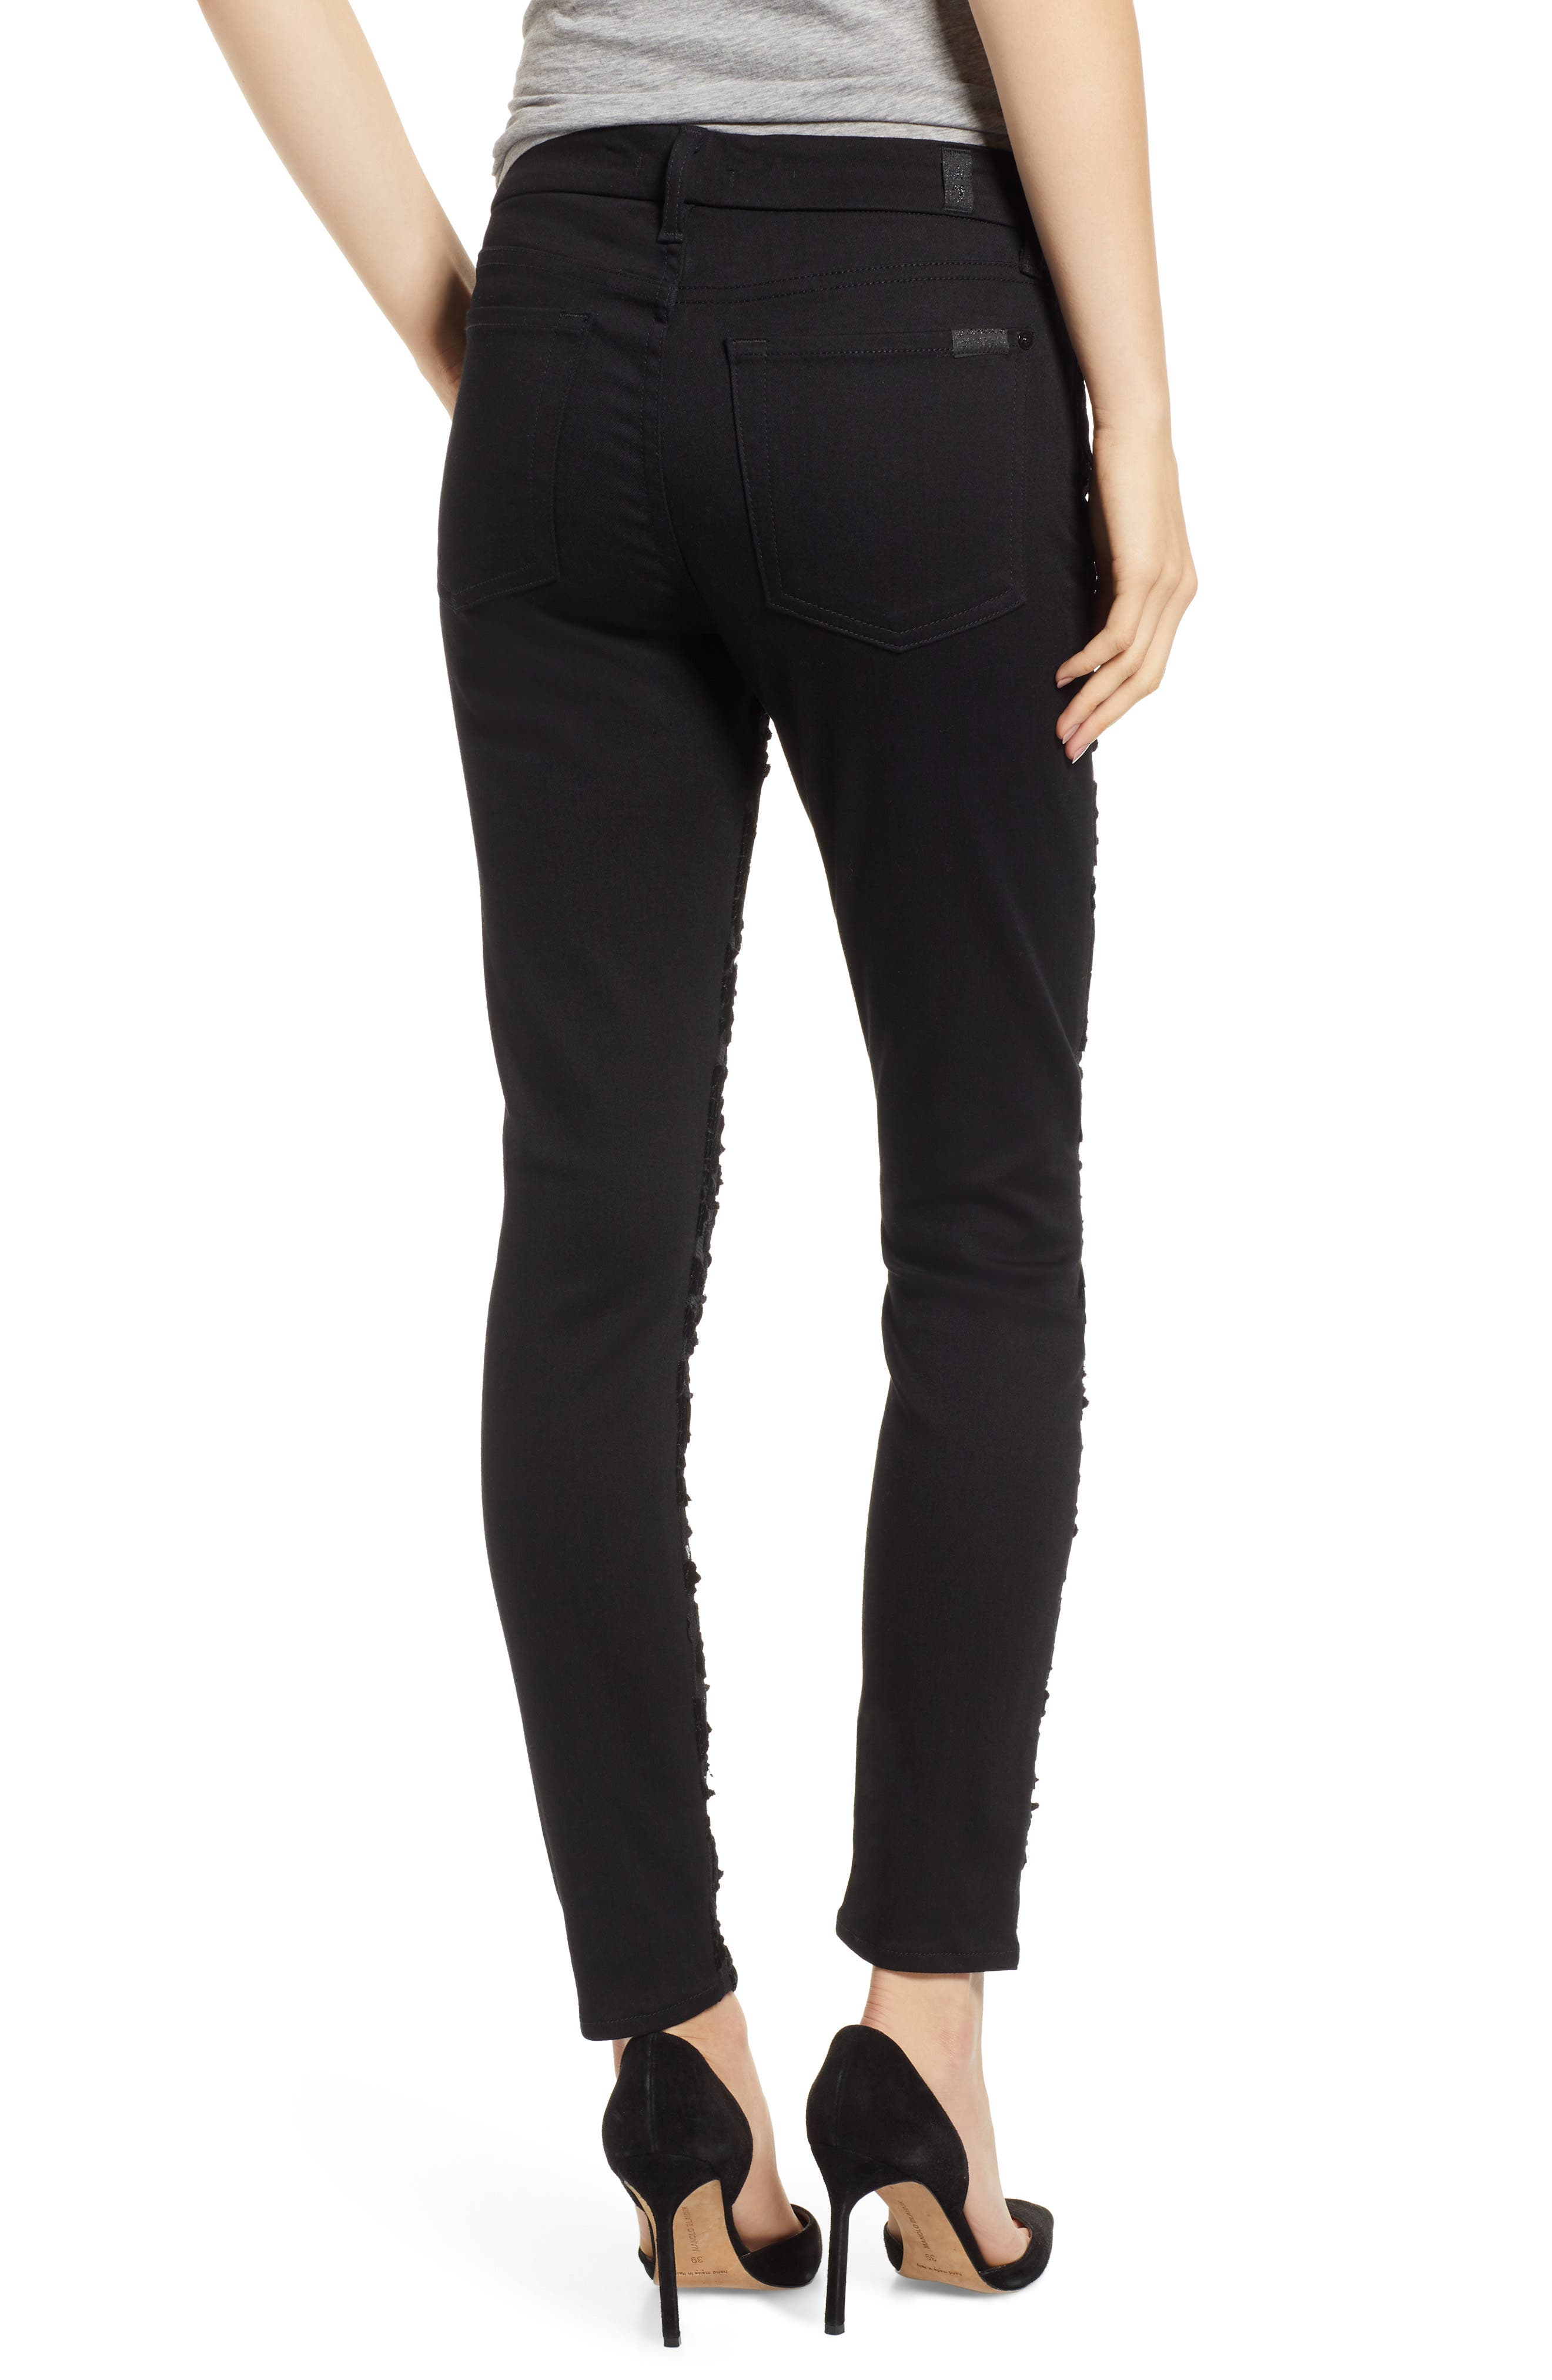 b(air) The Ankle Skinny Jeans,                             Alternate thumbnail 2, color,                             004